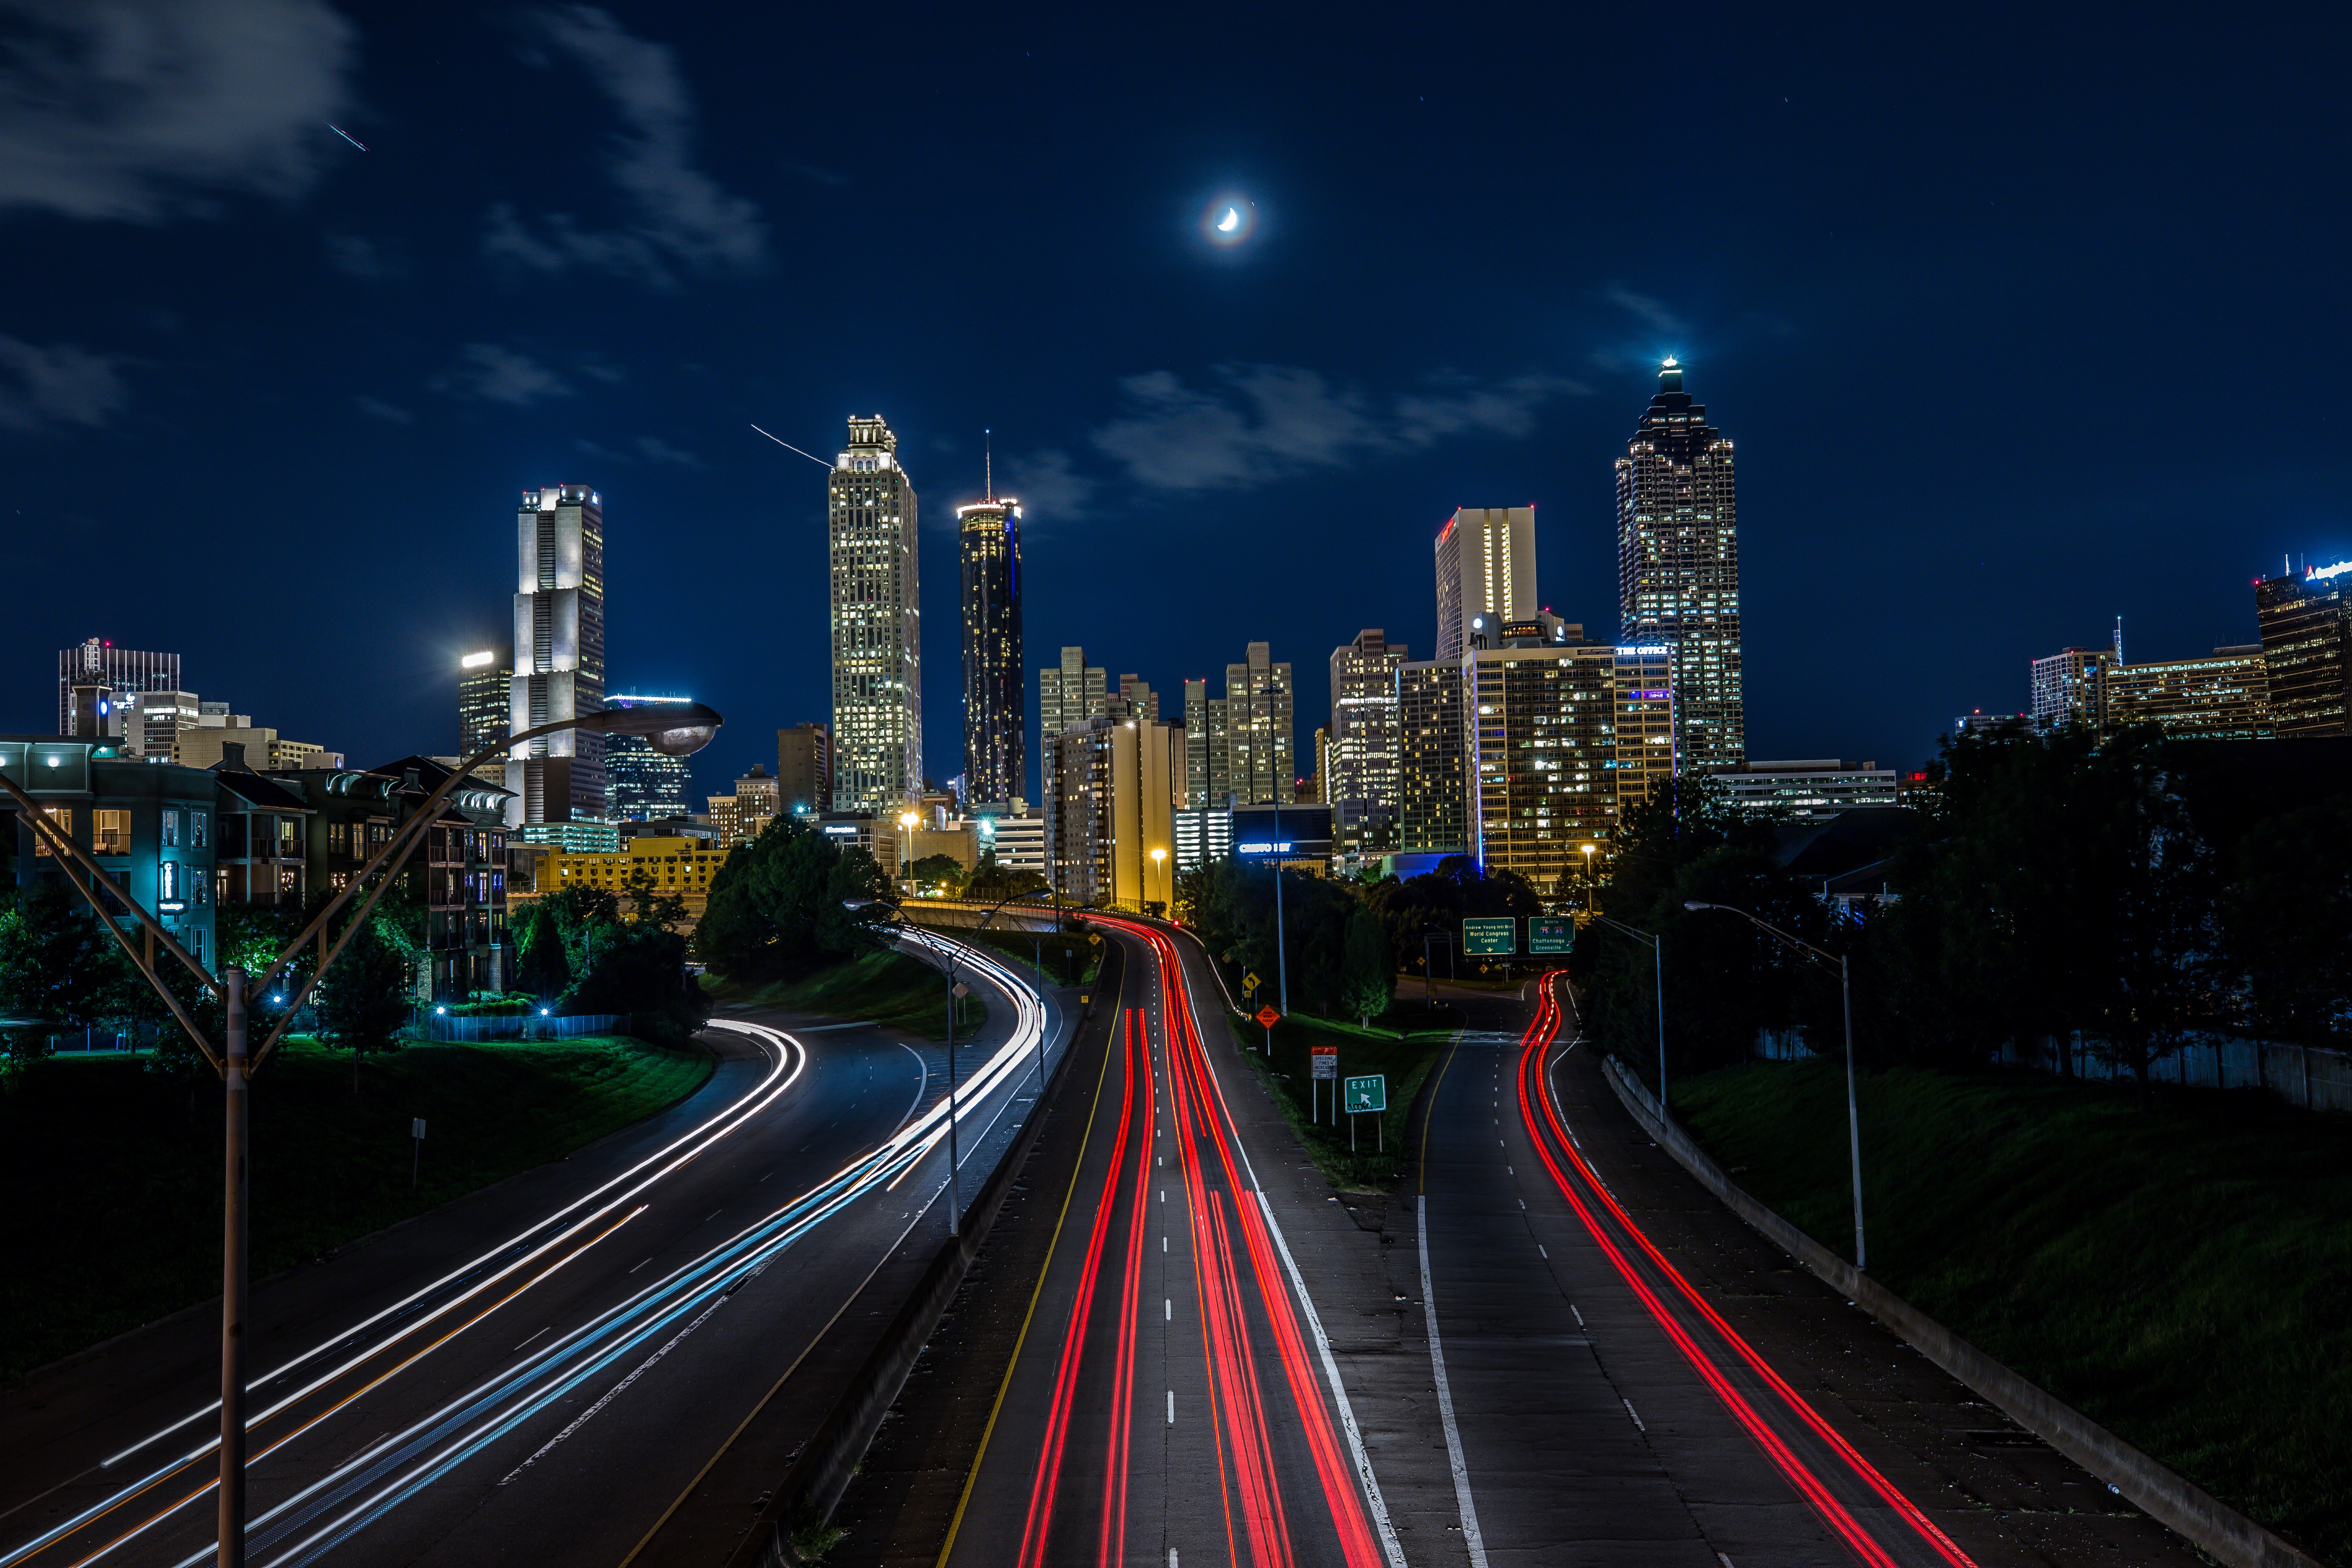 Long exposure shot of Jackson Street Bridge and surrounding skyscrapers over which the half moon shines